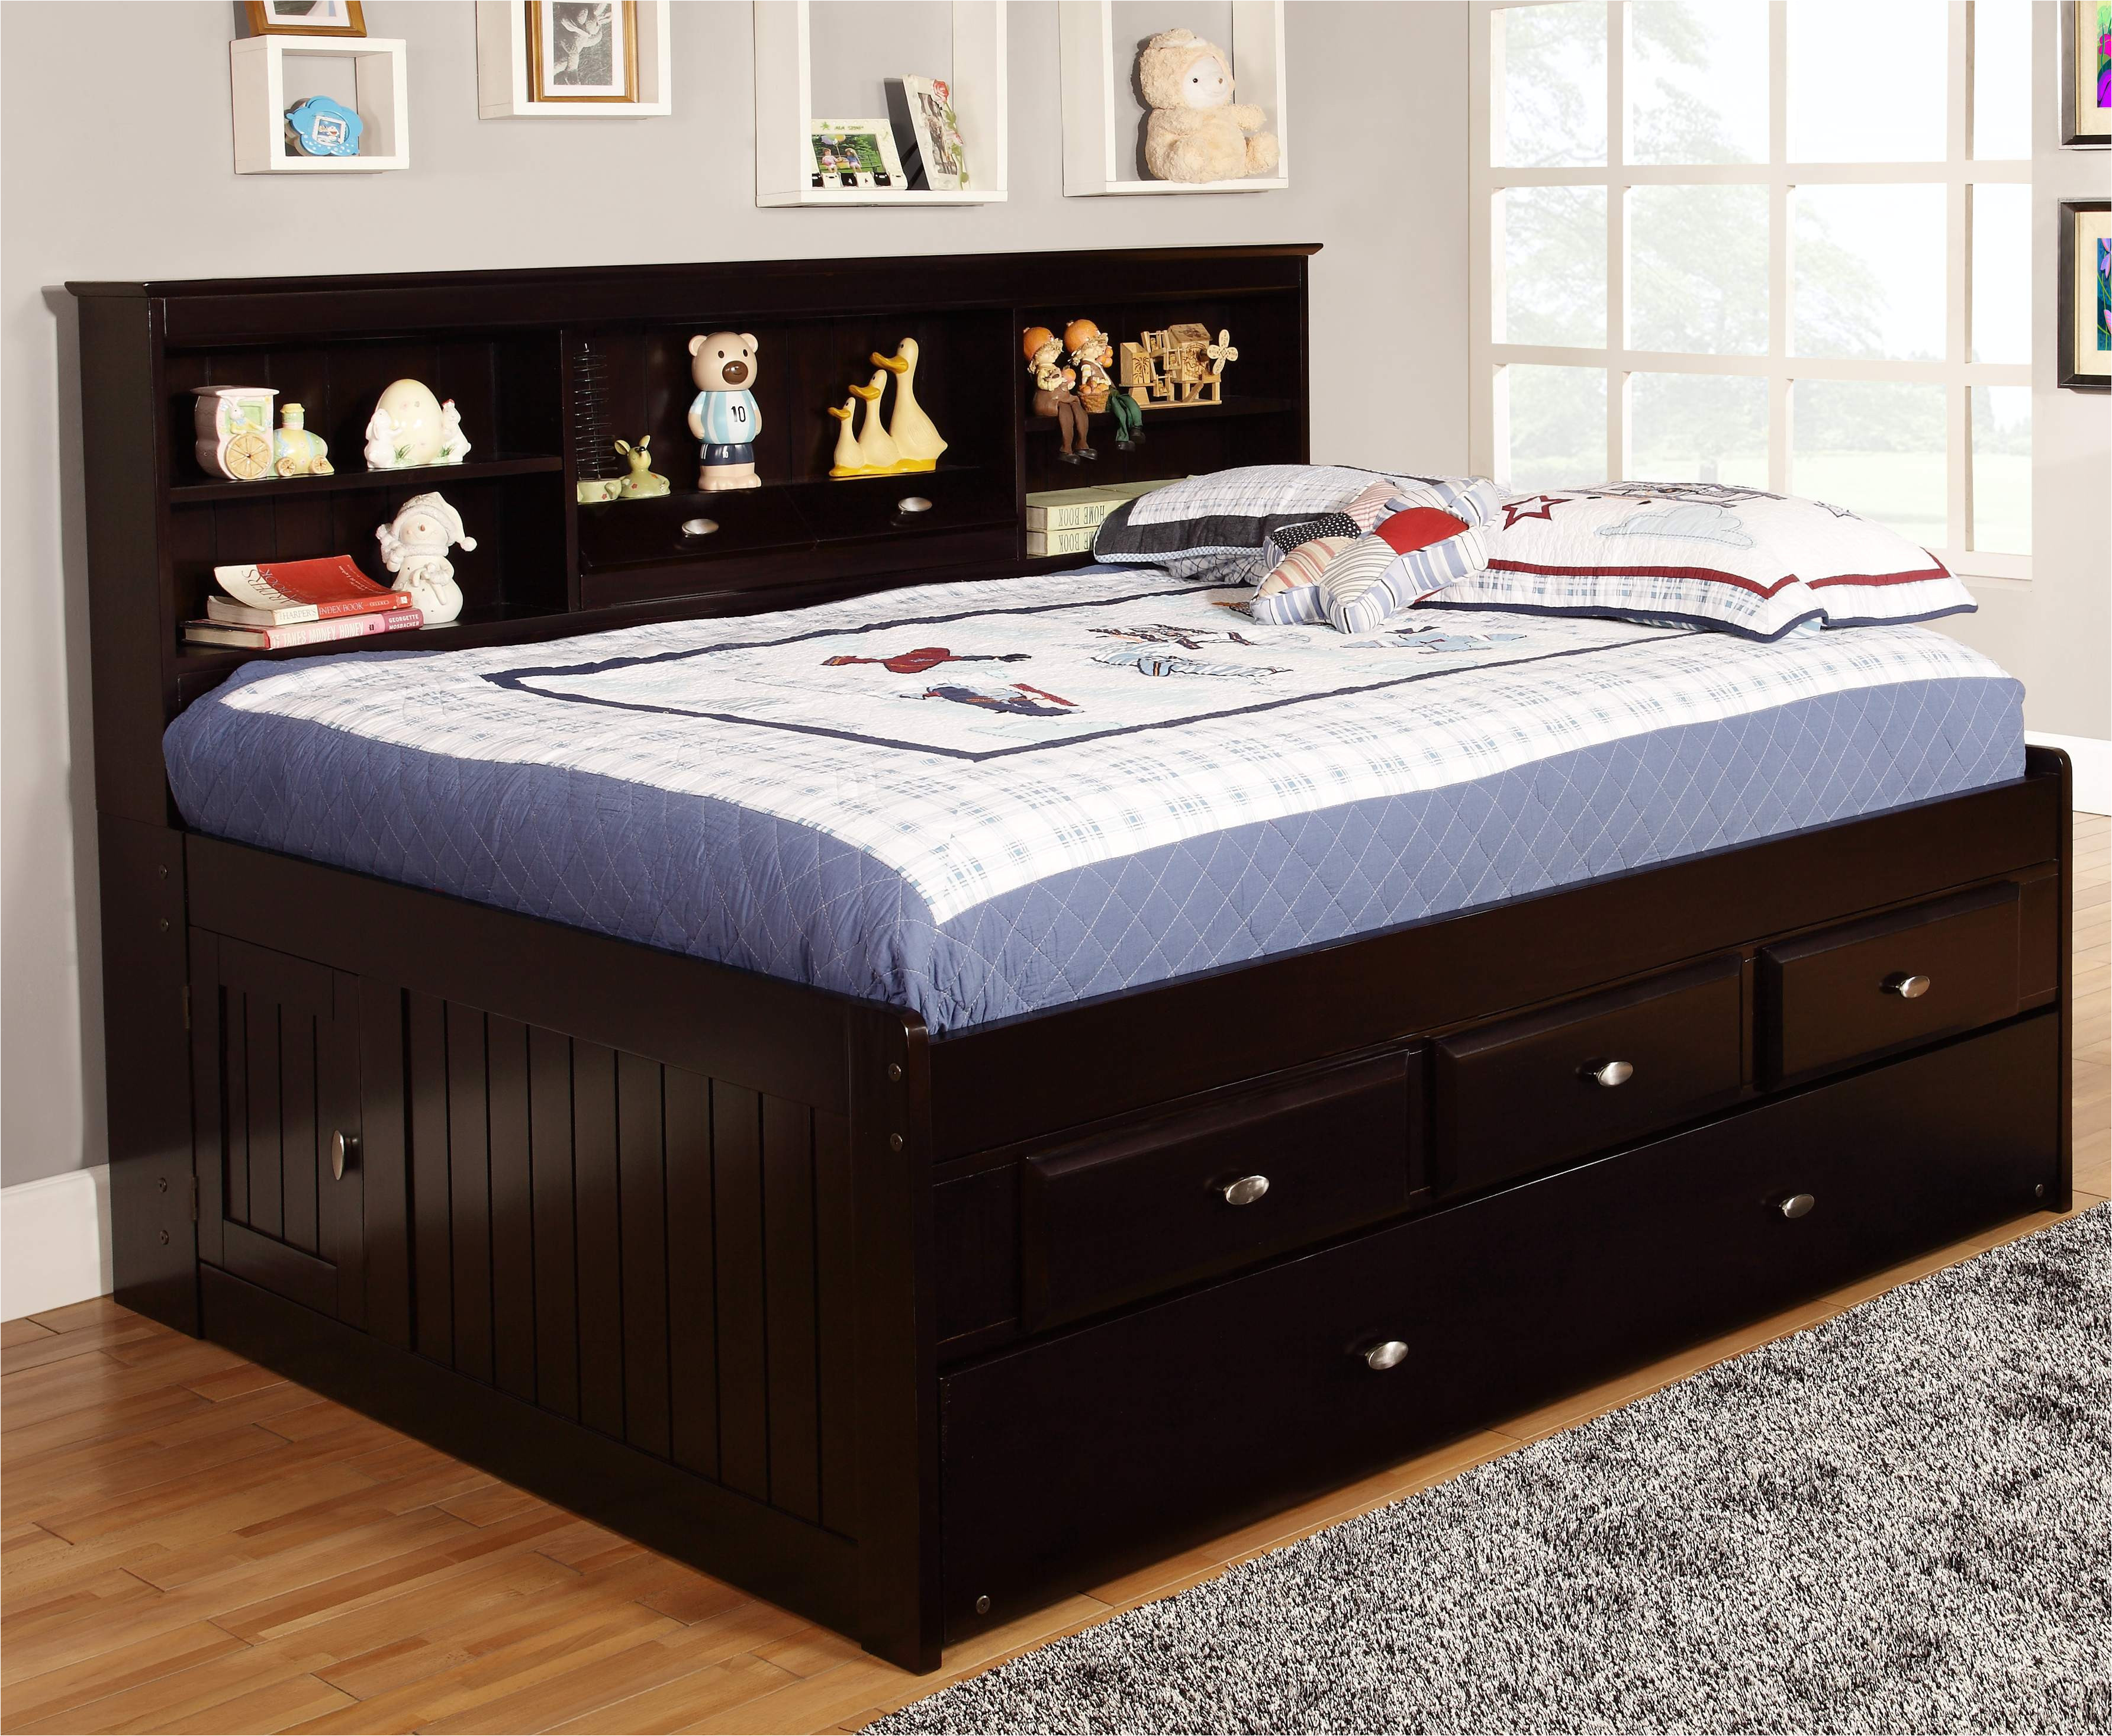 captains beds queen size twin bed with dresser underneath queen captains bed